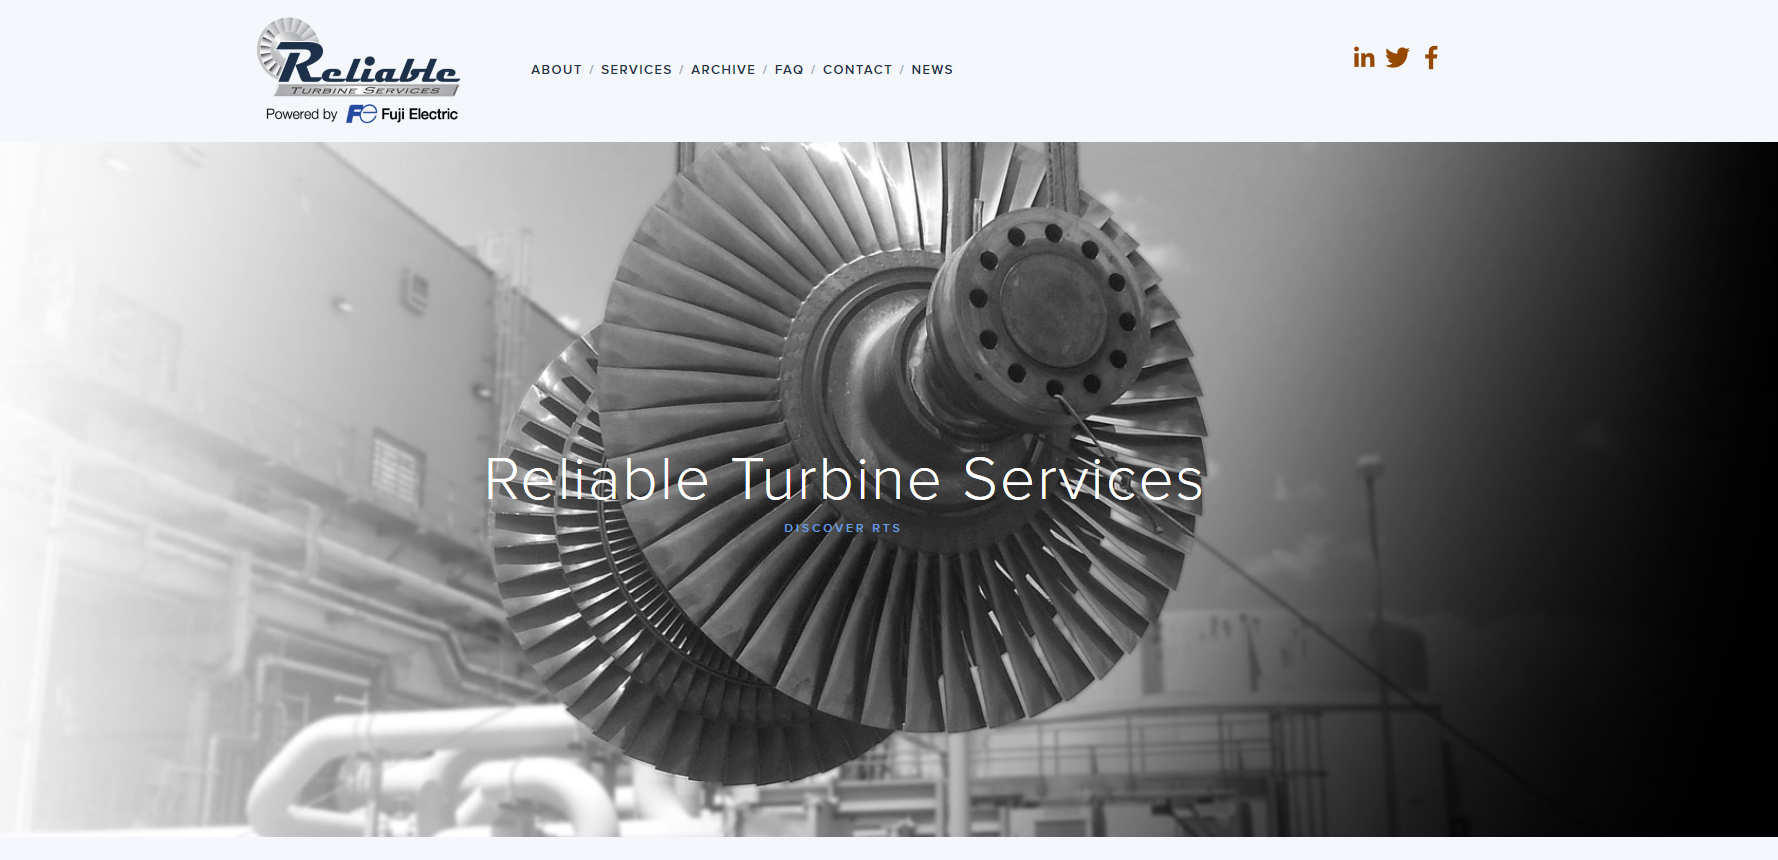 Since 1984, RTS has earned recognition as a full-service turbine repair company. We can perform a comprehensive list of inspections, repairs and replacement parts for all sizes of steam turbines and generators. We have worked with virtually every type of steam turbine used today in power generation and/or industrial applications.